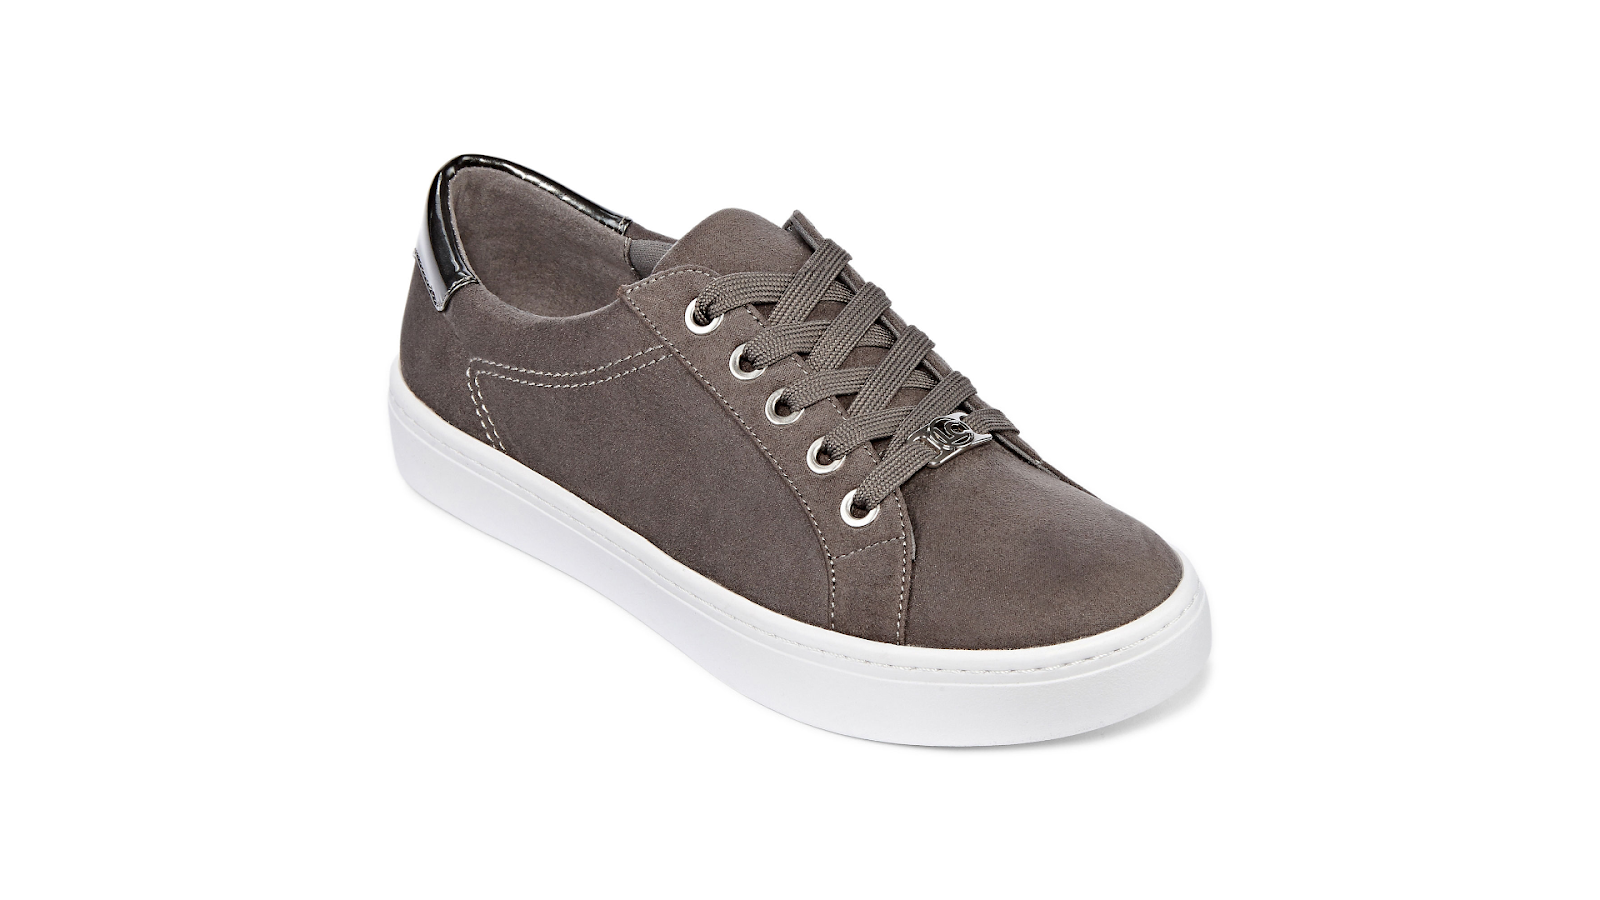 JCPenney B1G2 Free Shoe Sale  Pairs  8   Up! 042d979a6f01